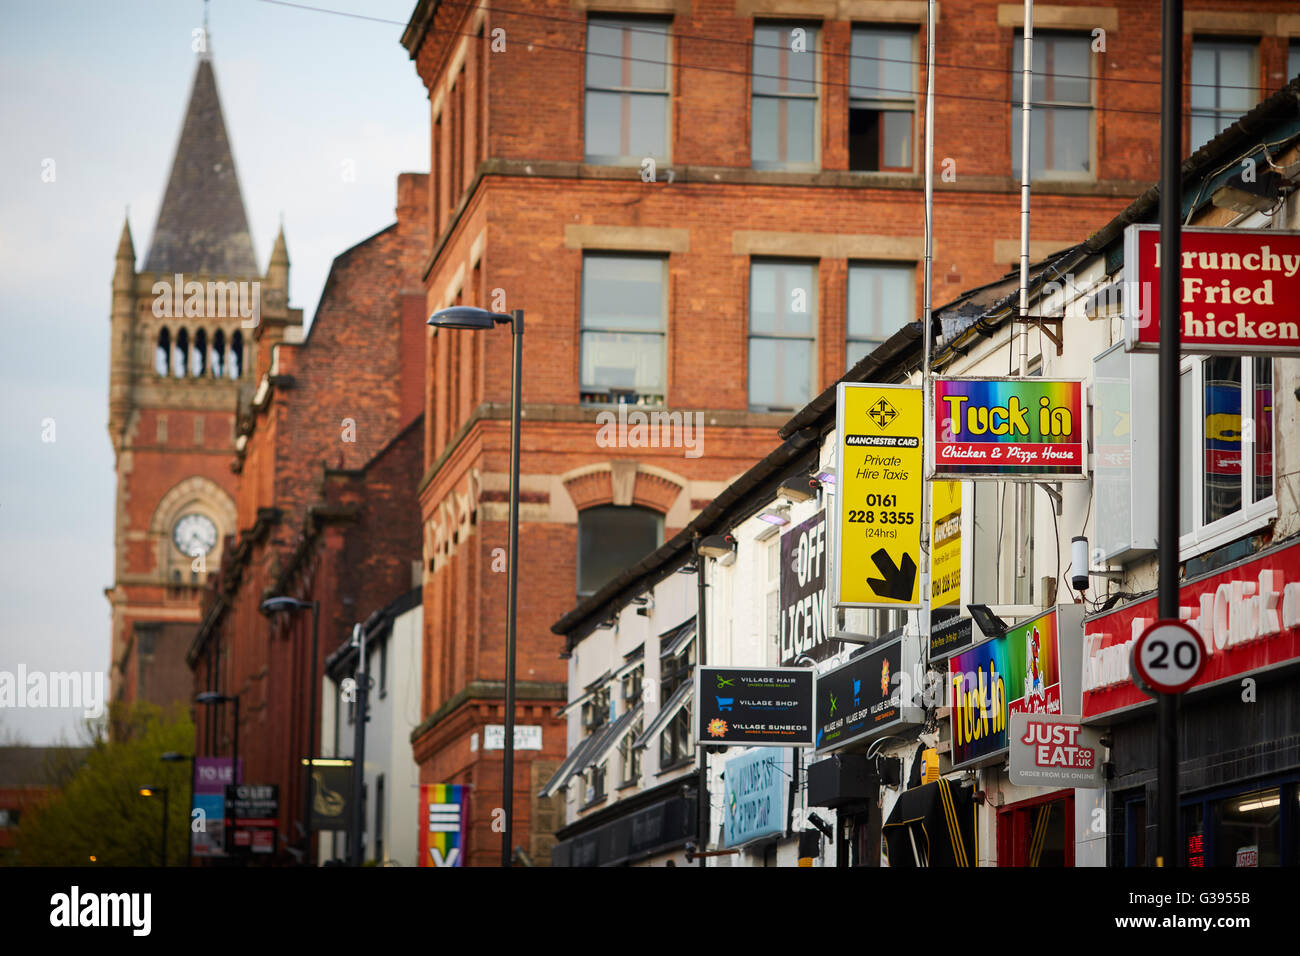 Manchester gay village   Take away shops int eh village - Stock Image